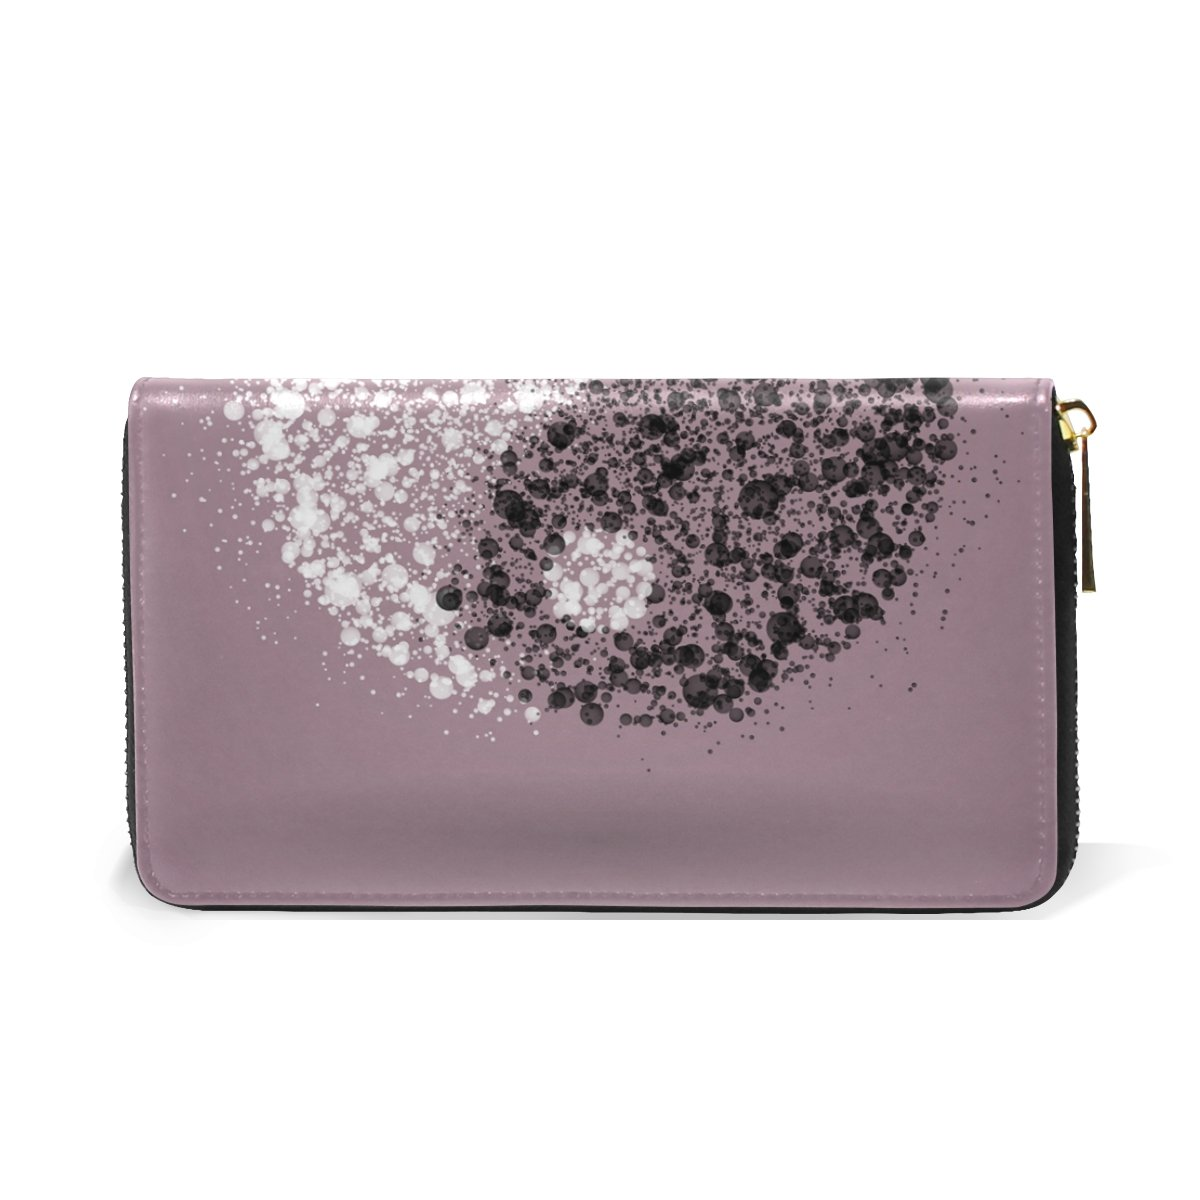 87d790e51af7 MAPOLO Yin And Yang Symbol Print Womens Clutch Purses Organizer And ...